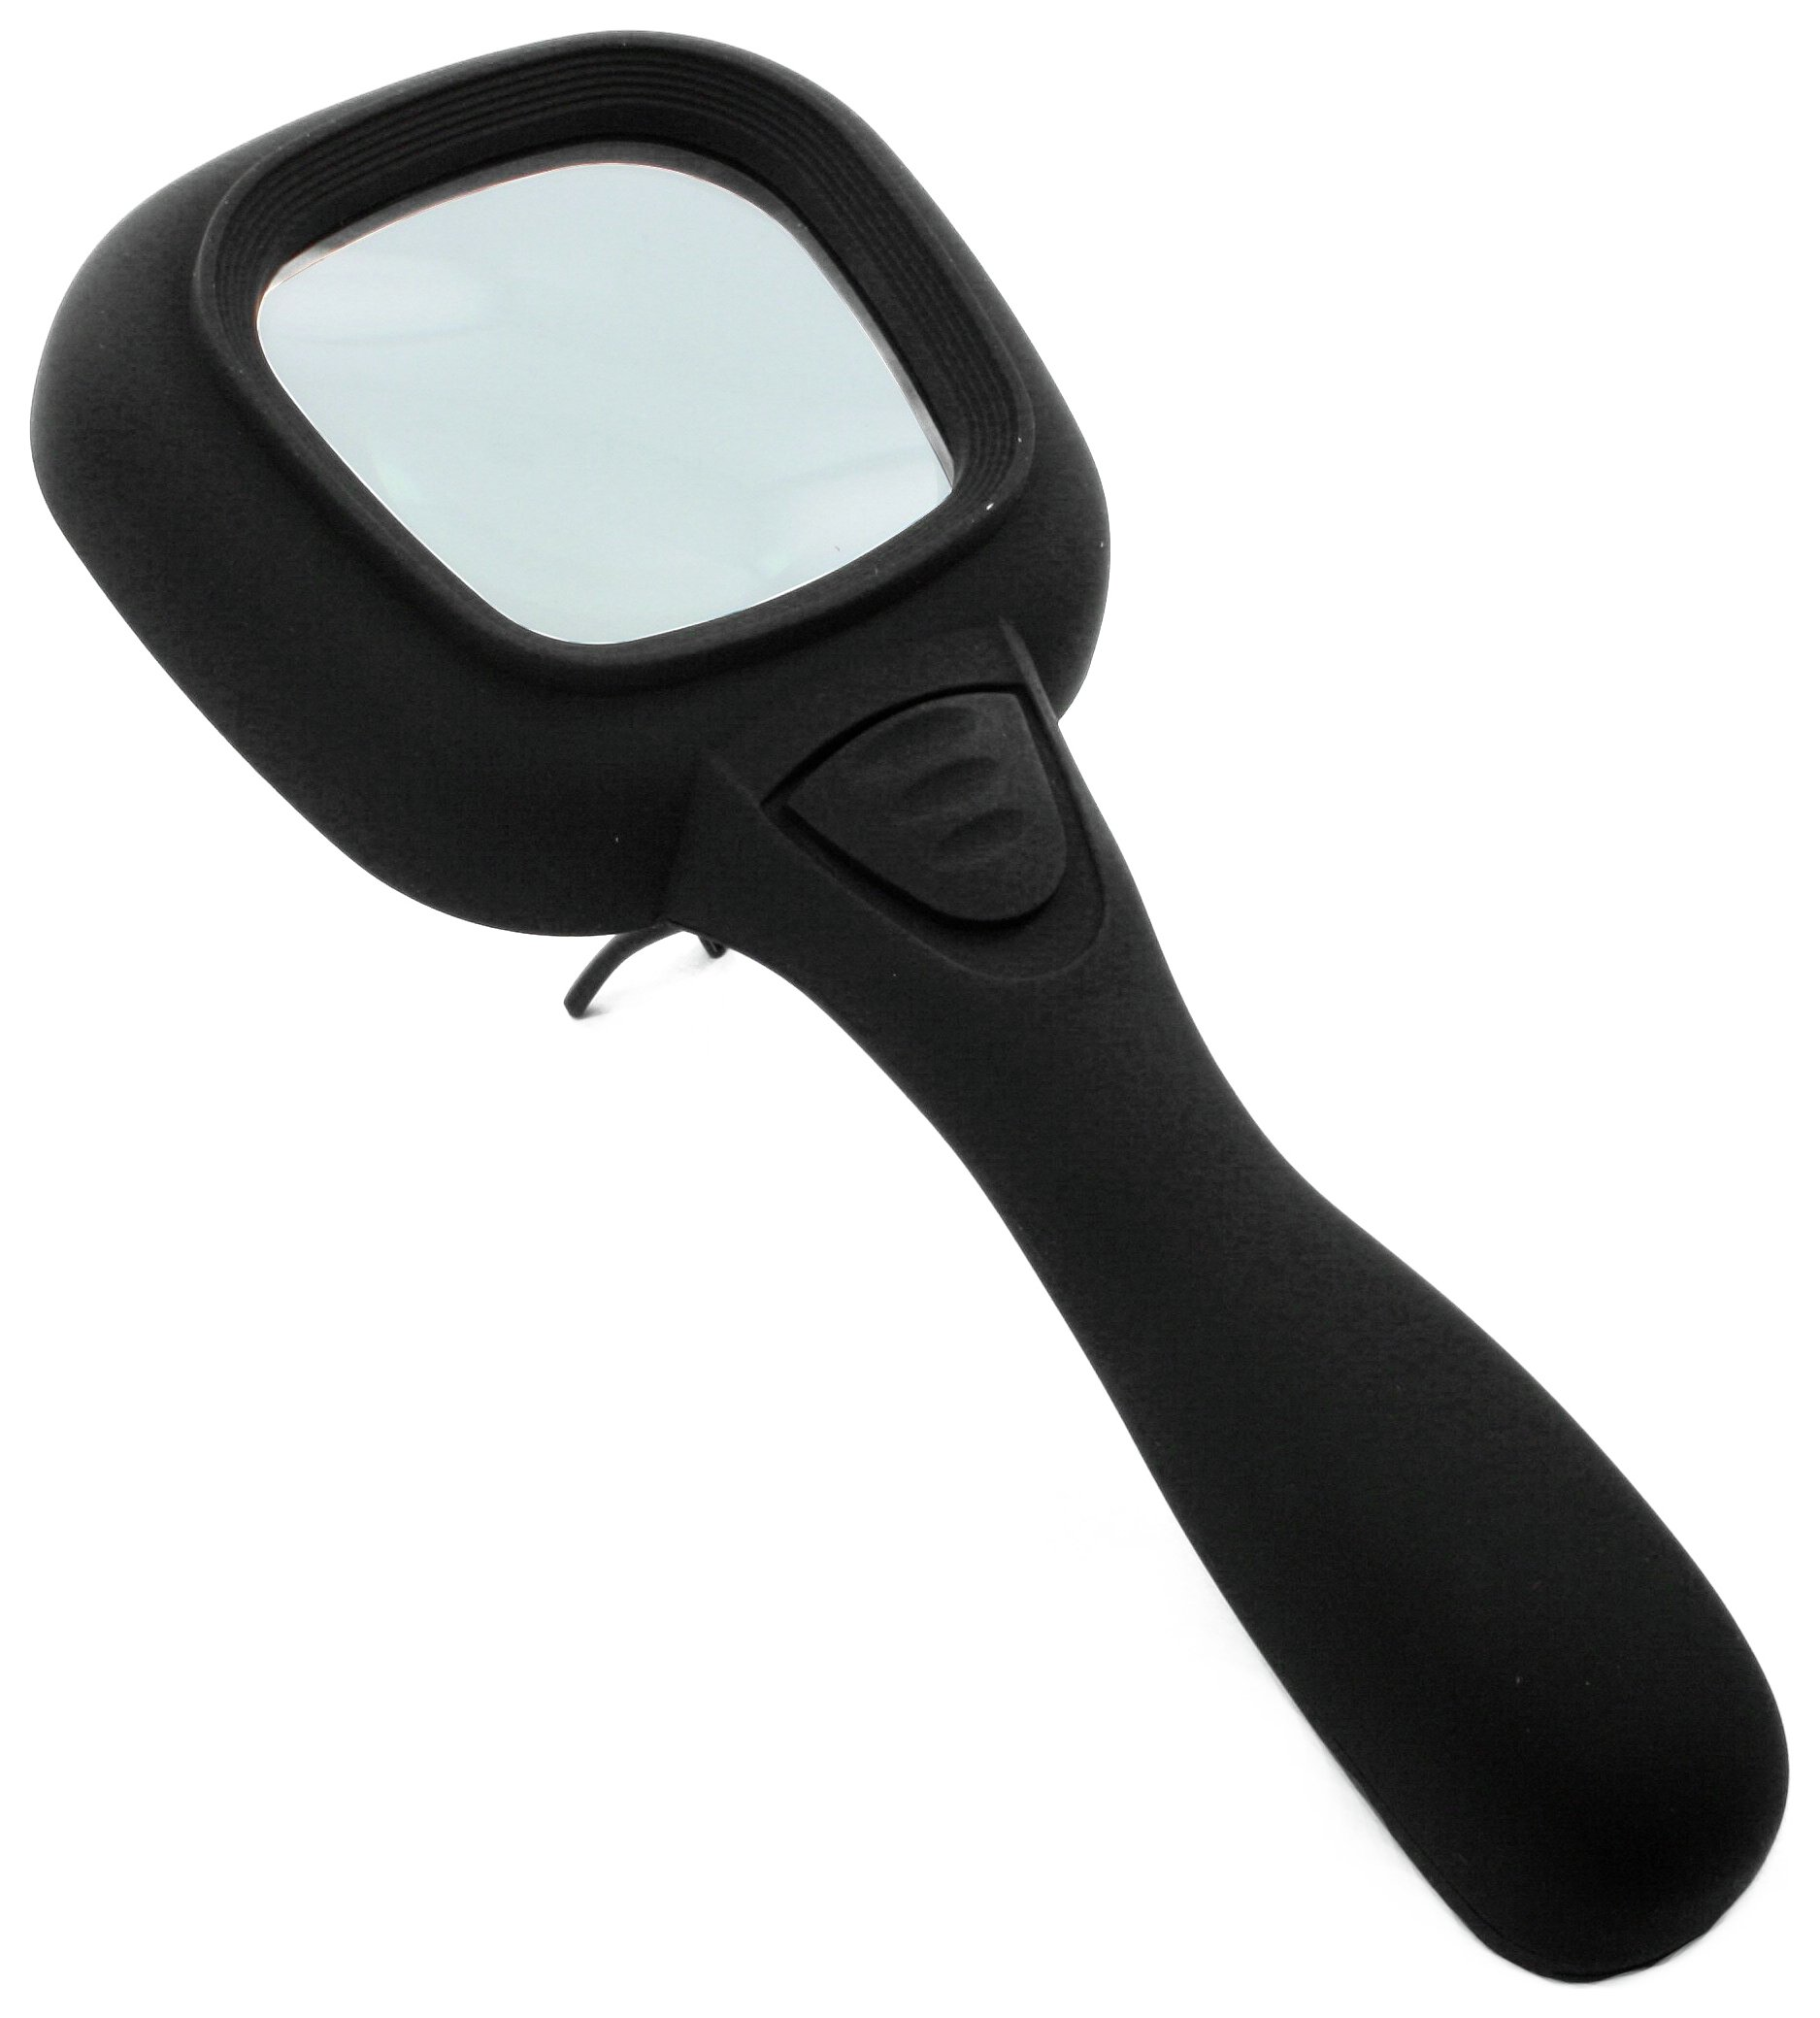 LightCraft LC1901 LED x4 Handheld Magnifier with Stand